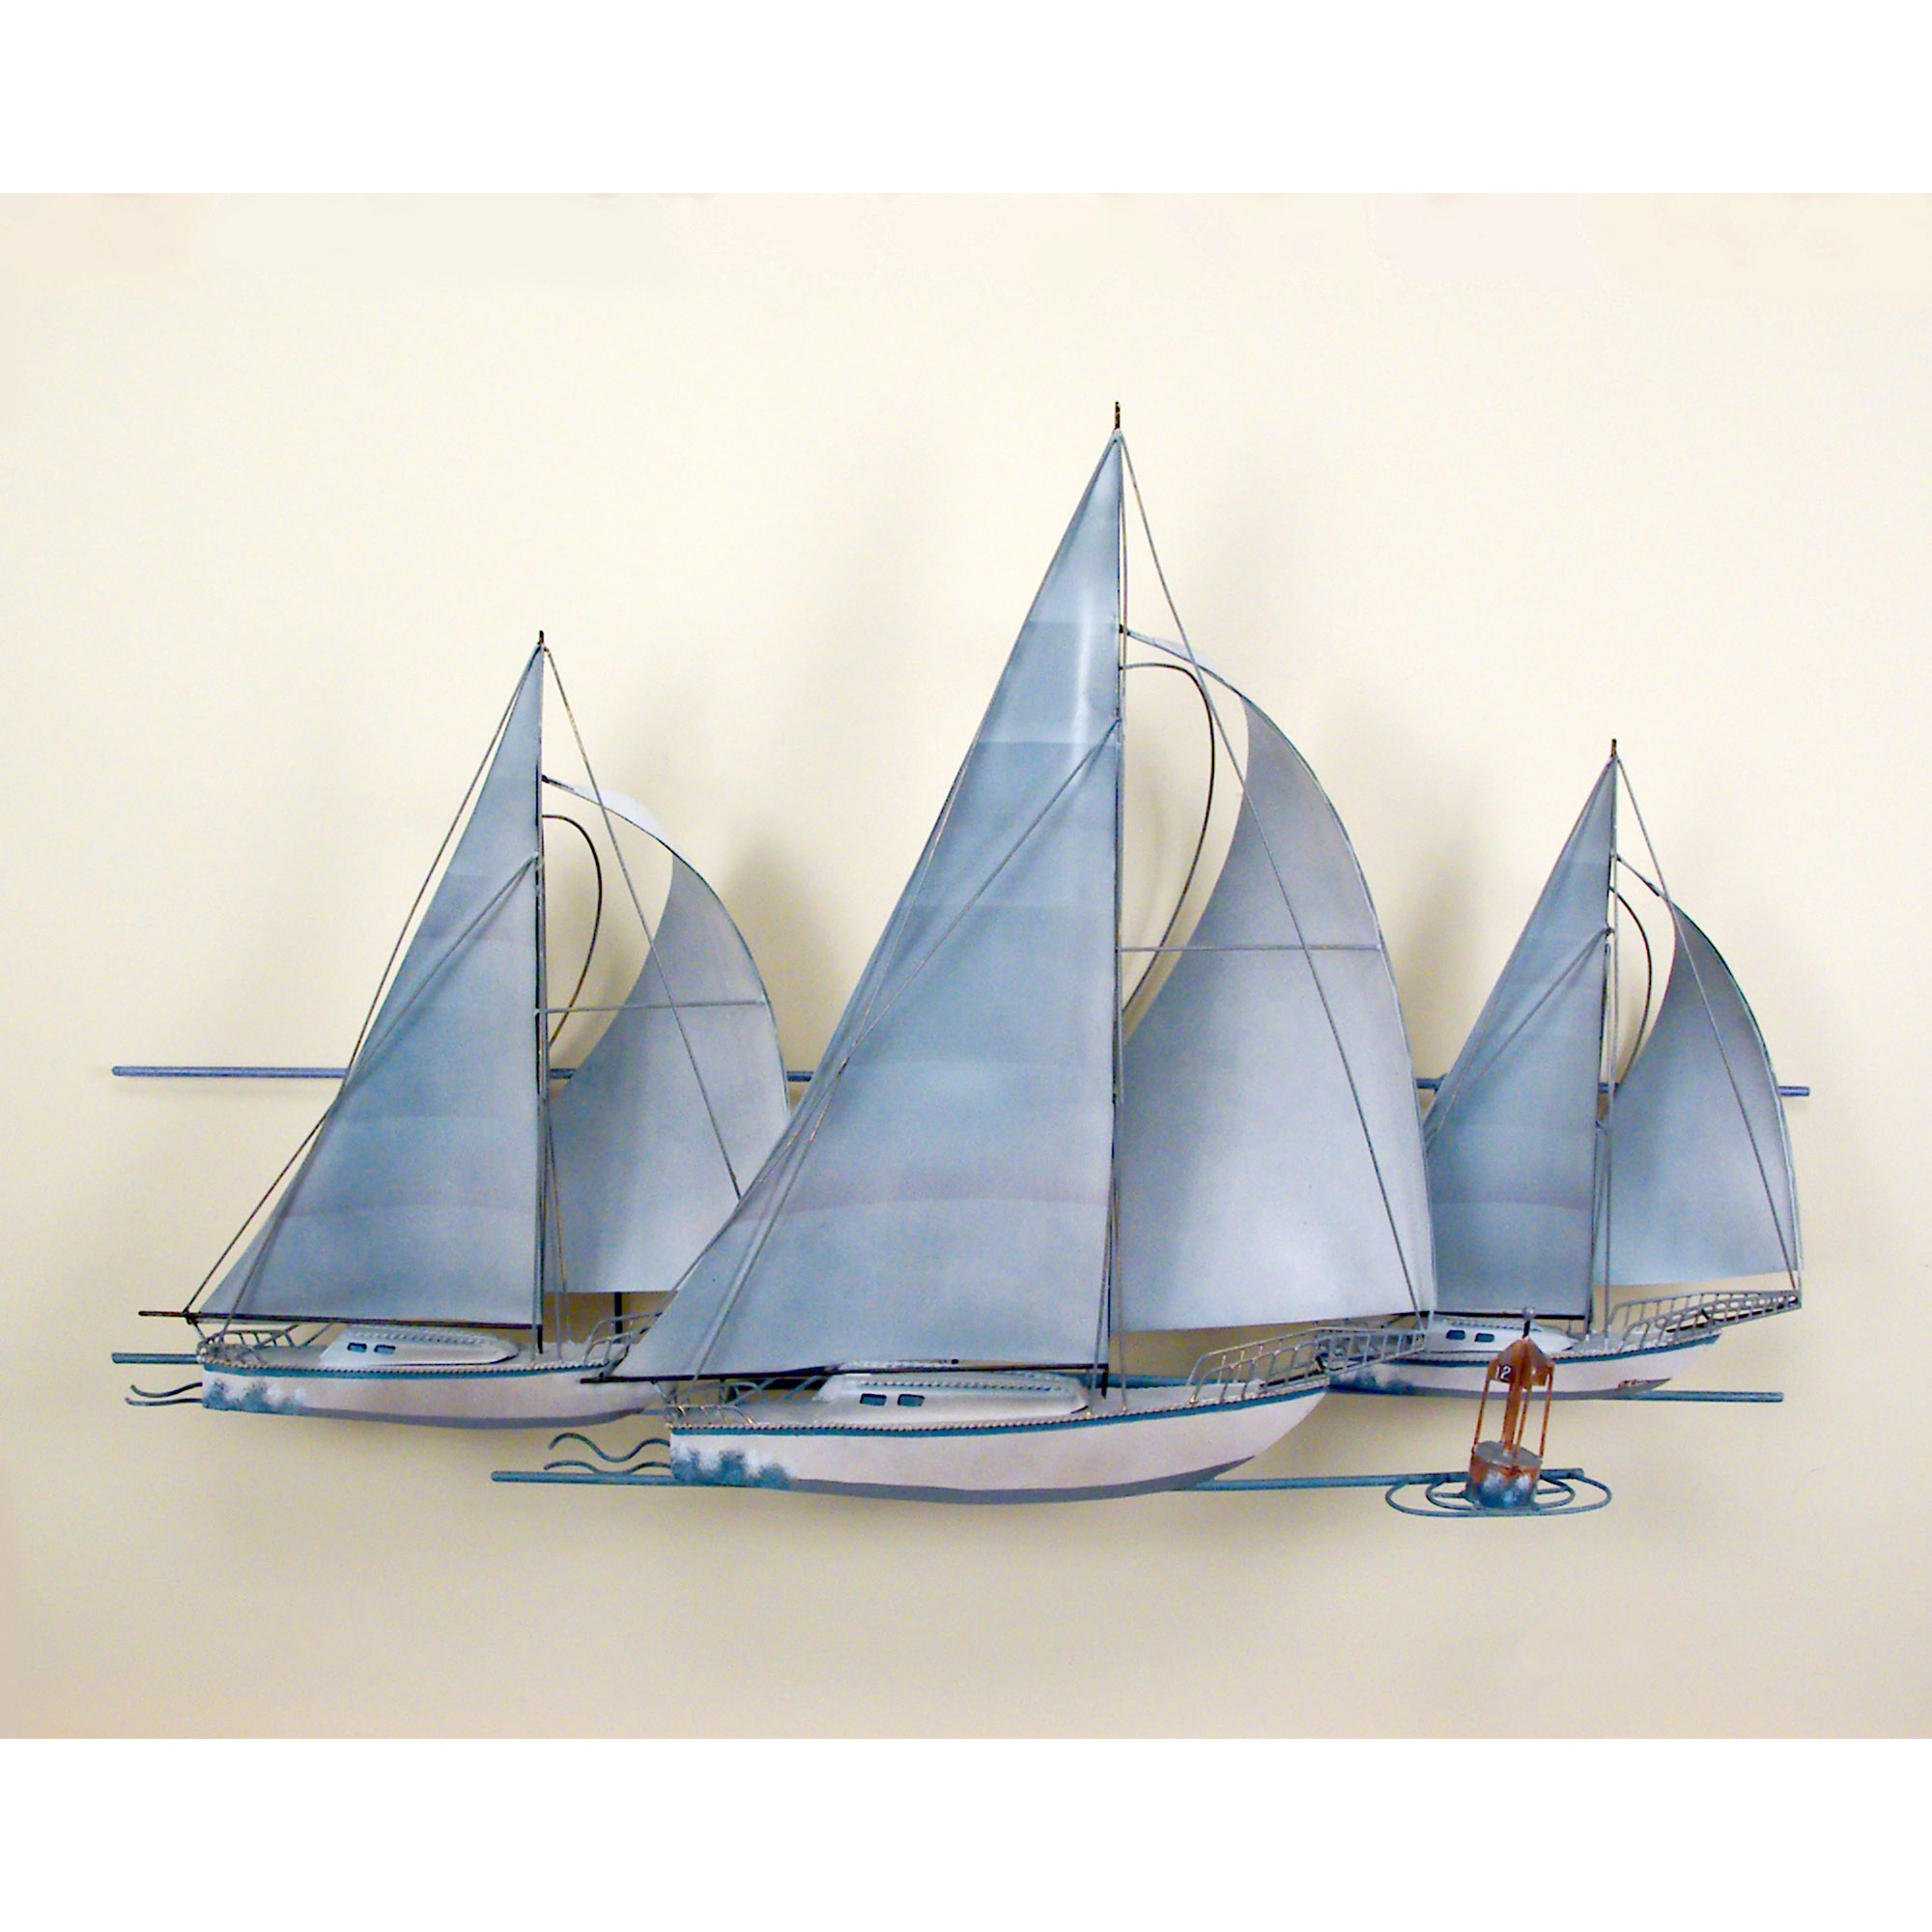 Lovely At The Races,Three Sail Boats, Race, Wall Art, Wall Hanging RN88